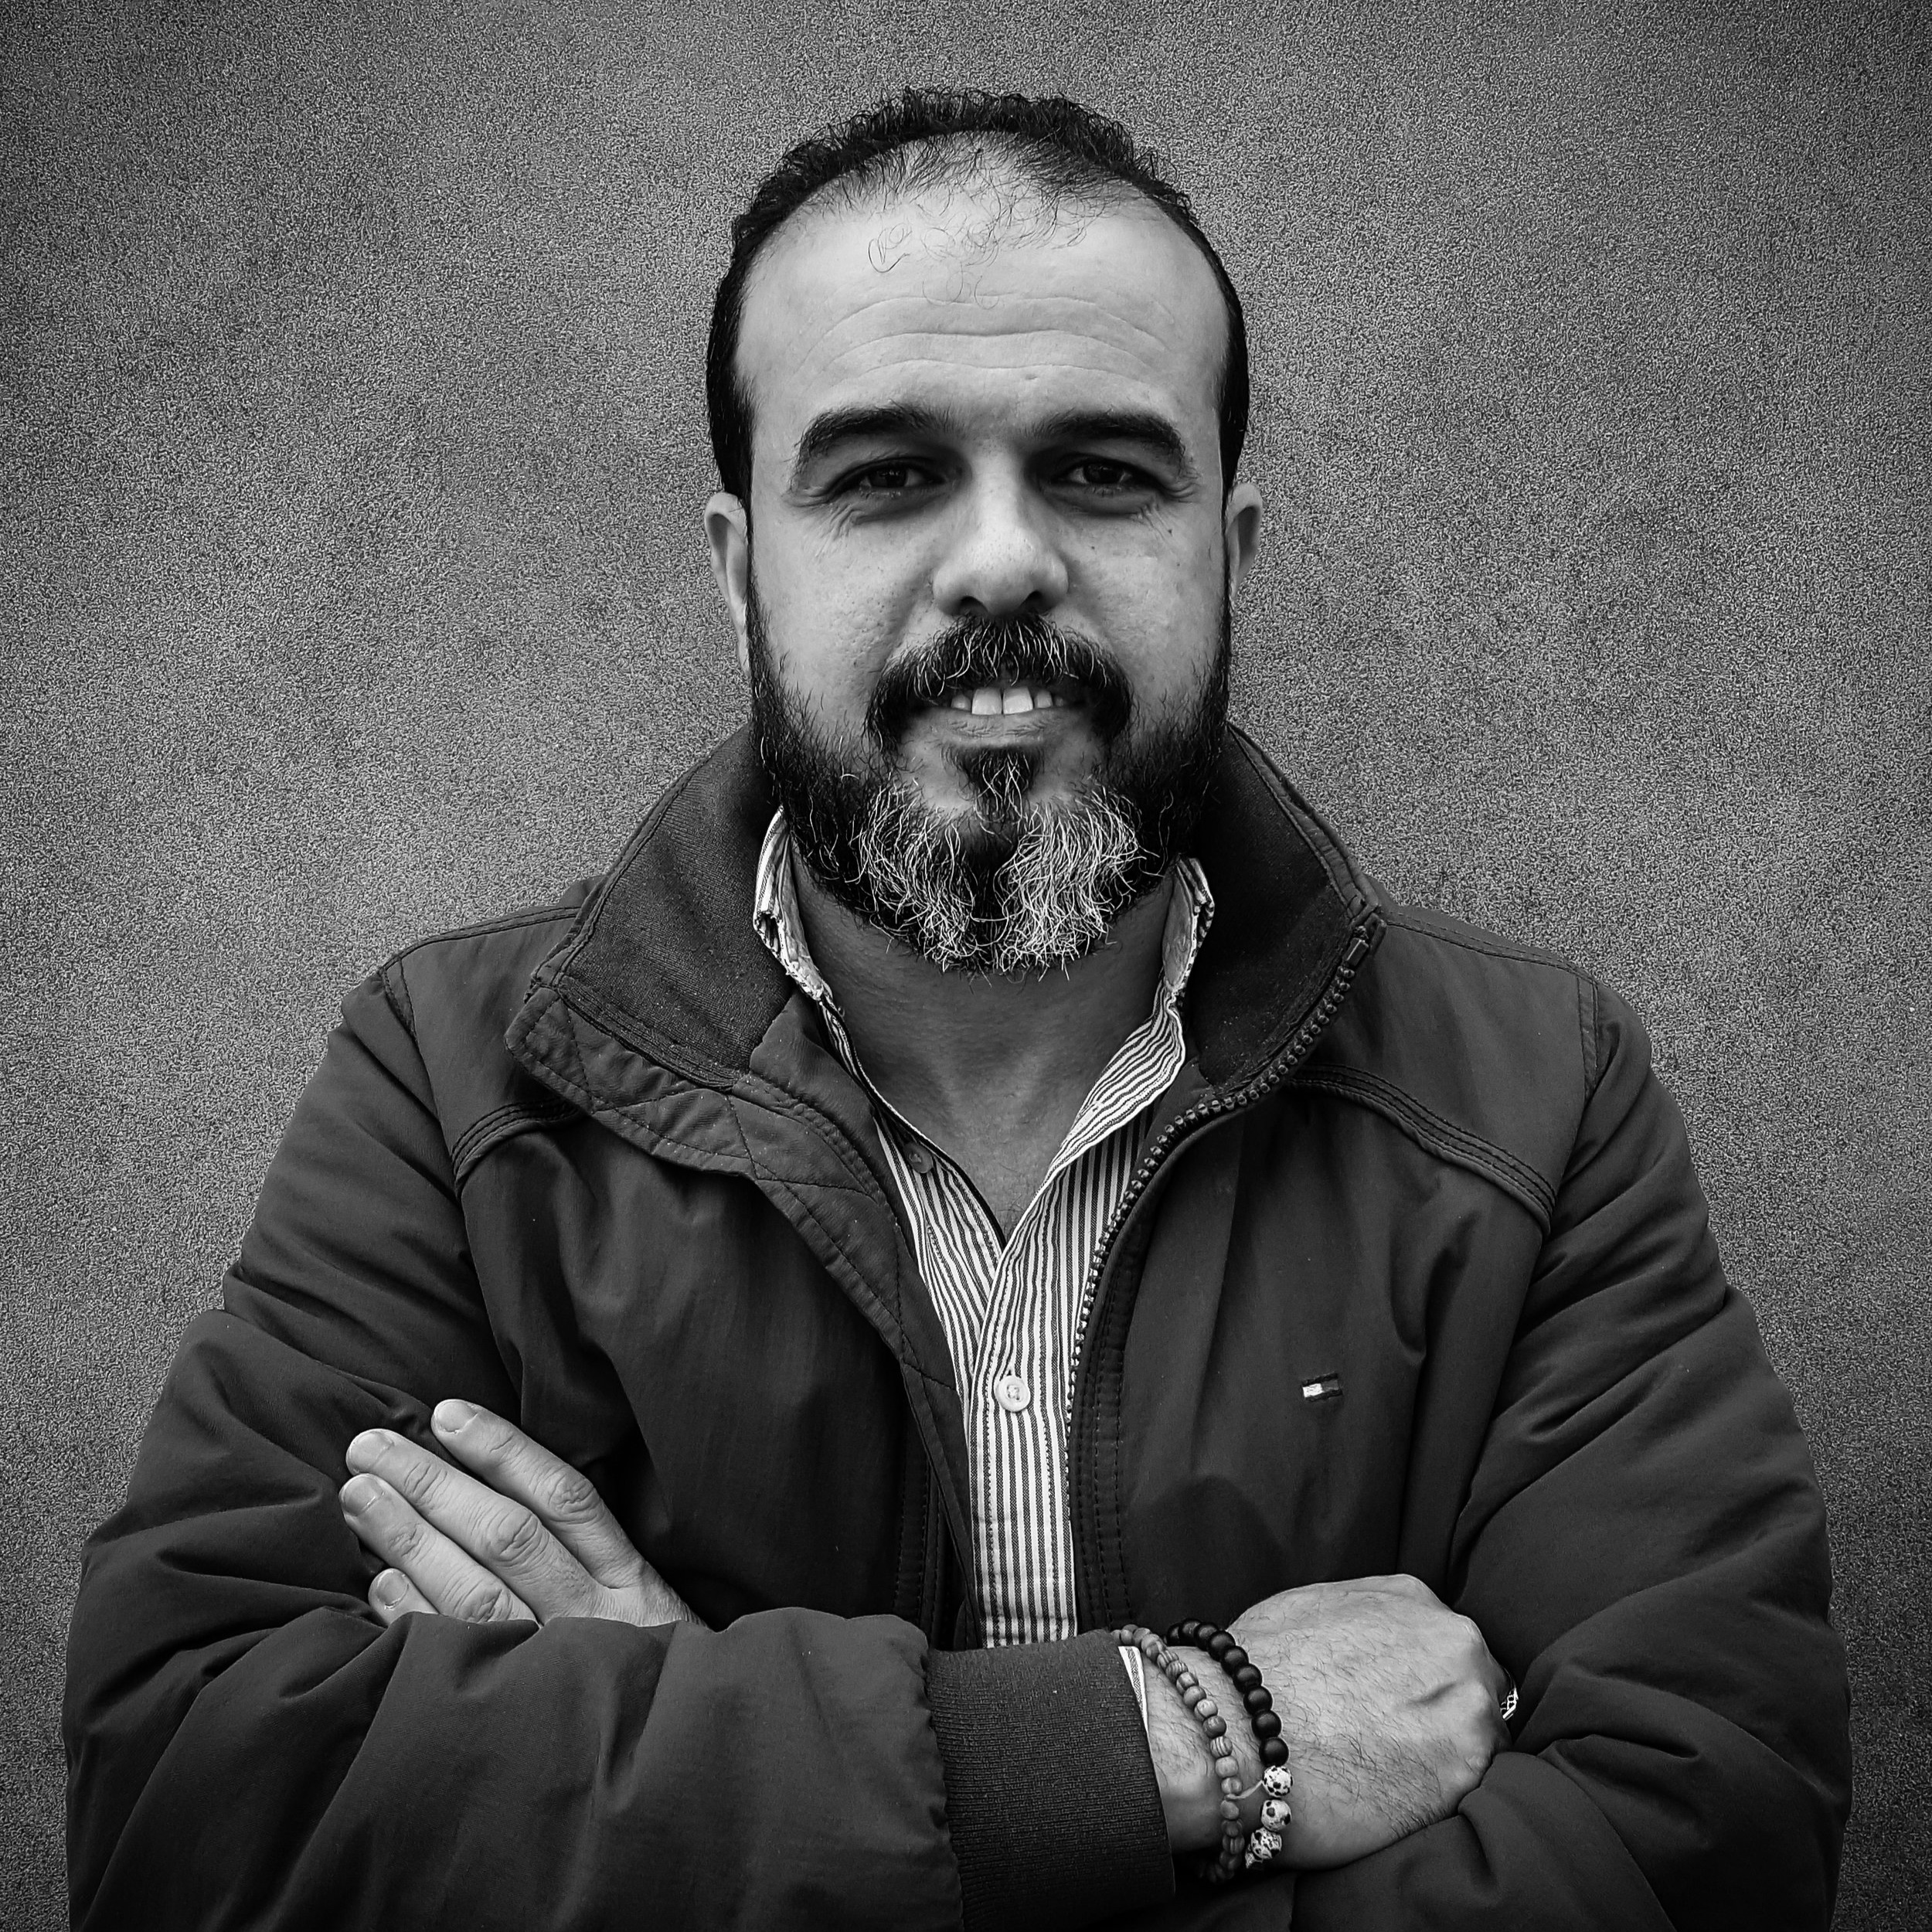 ABDURRAUF BEN MADI  Abdurrauf Ben Madi is a freelance documentary photographer based in Libya. Born in Tripoli in 1976, he graduated from the Arts and Media University of Tripoli. His work has exhibited in Libya, Tunisia, Egypt, Germany, and the UK.   www.benmadi.ly    @abdurrauf.ben.madi